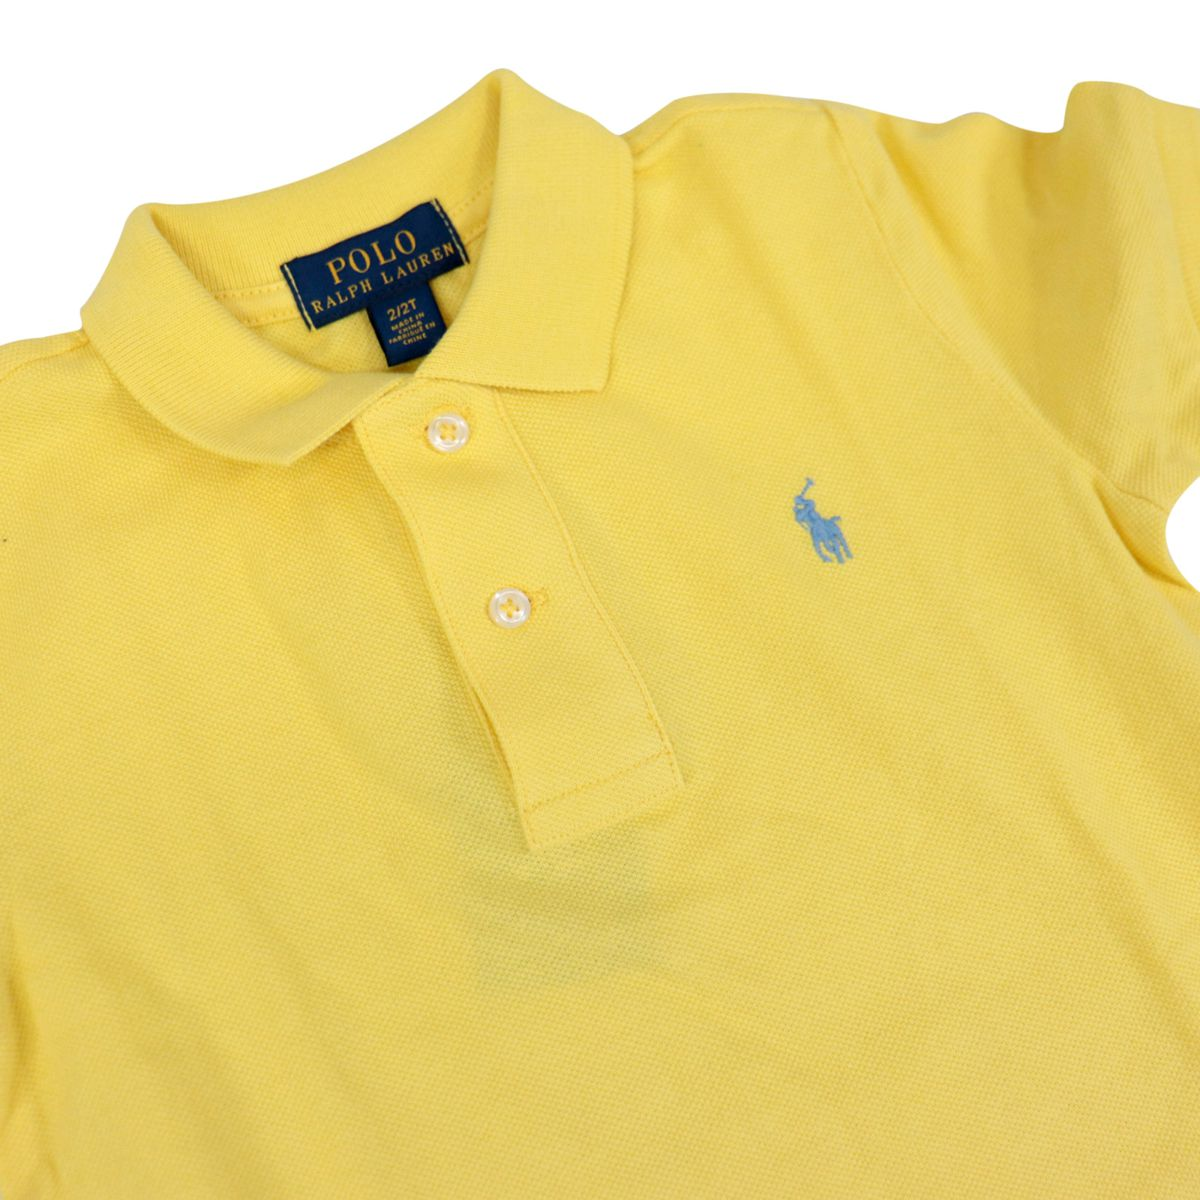 Two-button polo with front logo embroidery Yellow Polo Ralph Lauren